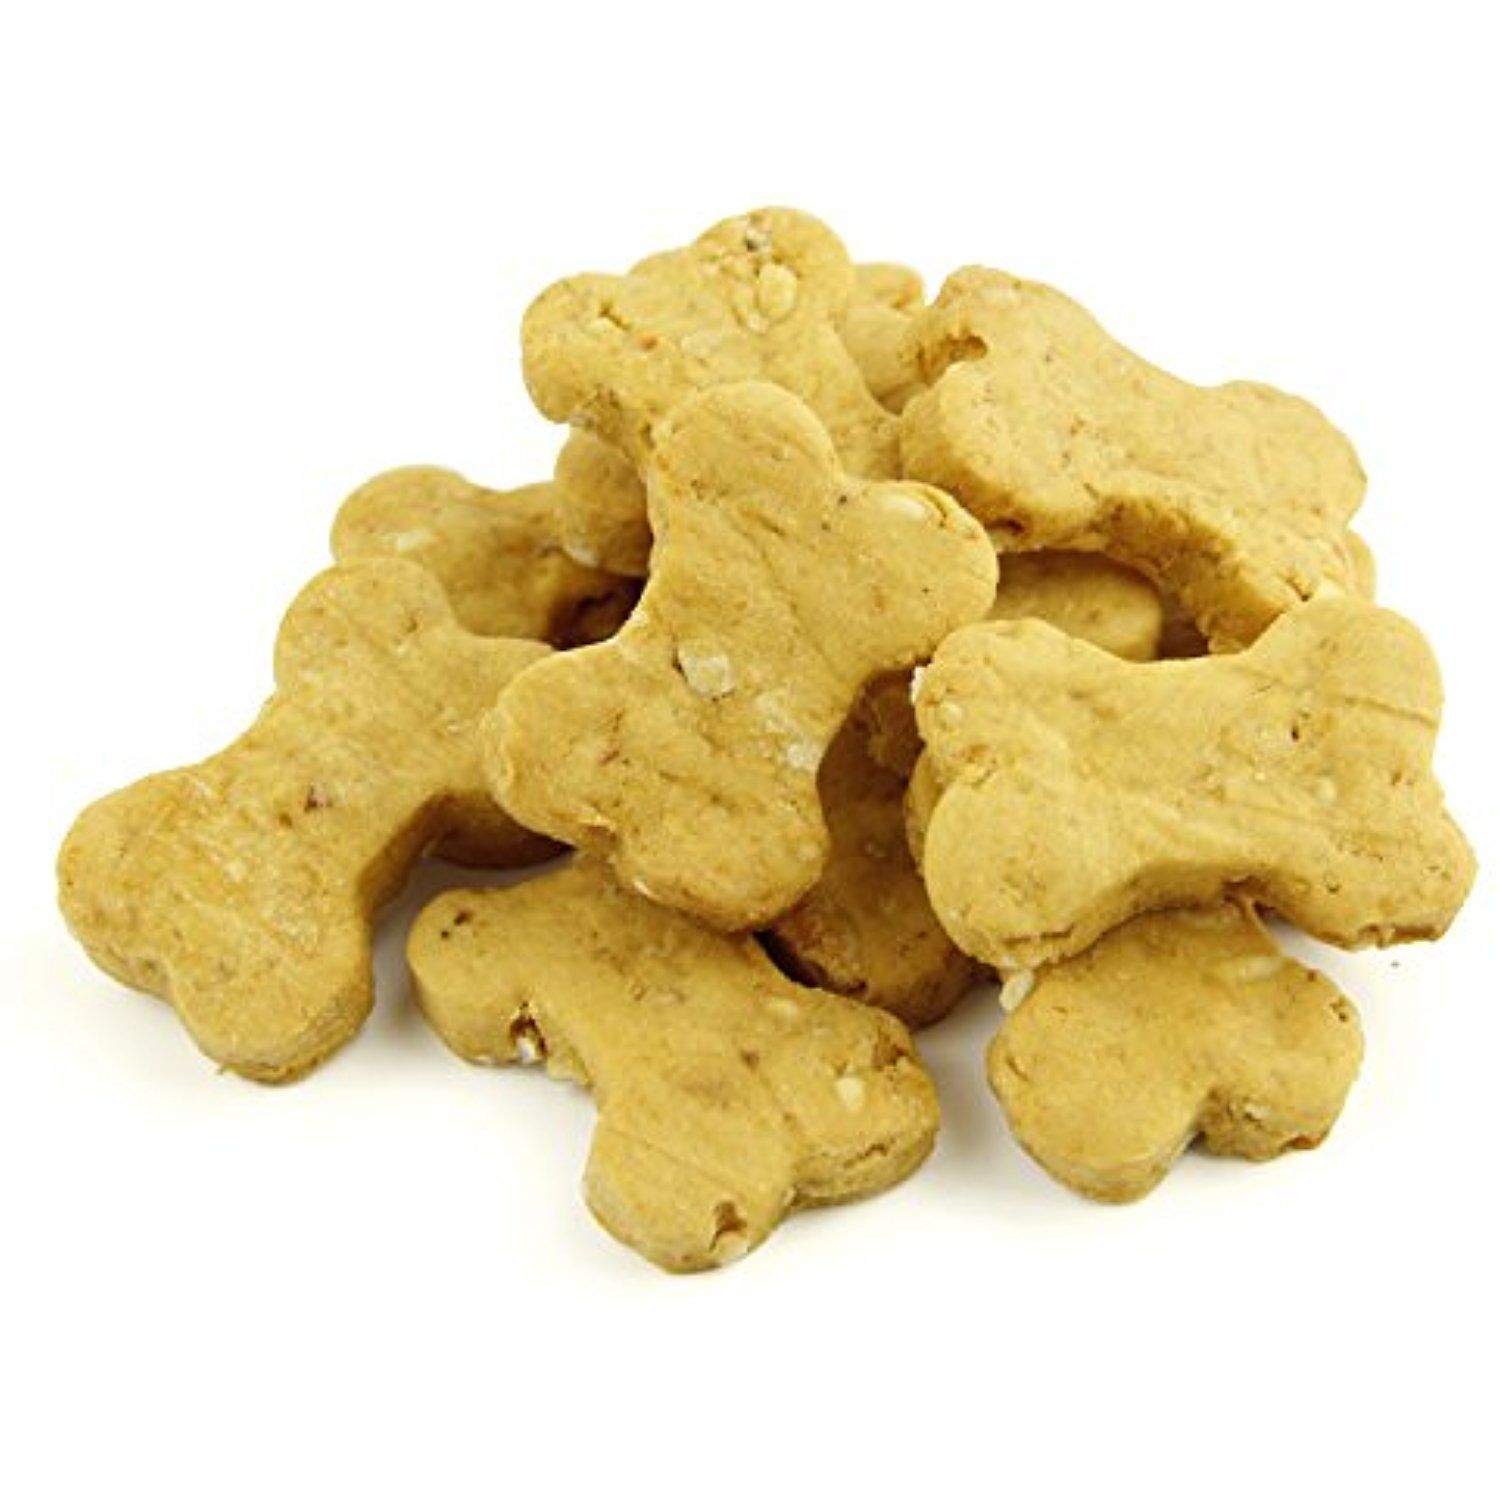 Pet Cuisine Dog Treats Puppy Chews Training Snacks Sweet Potato